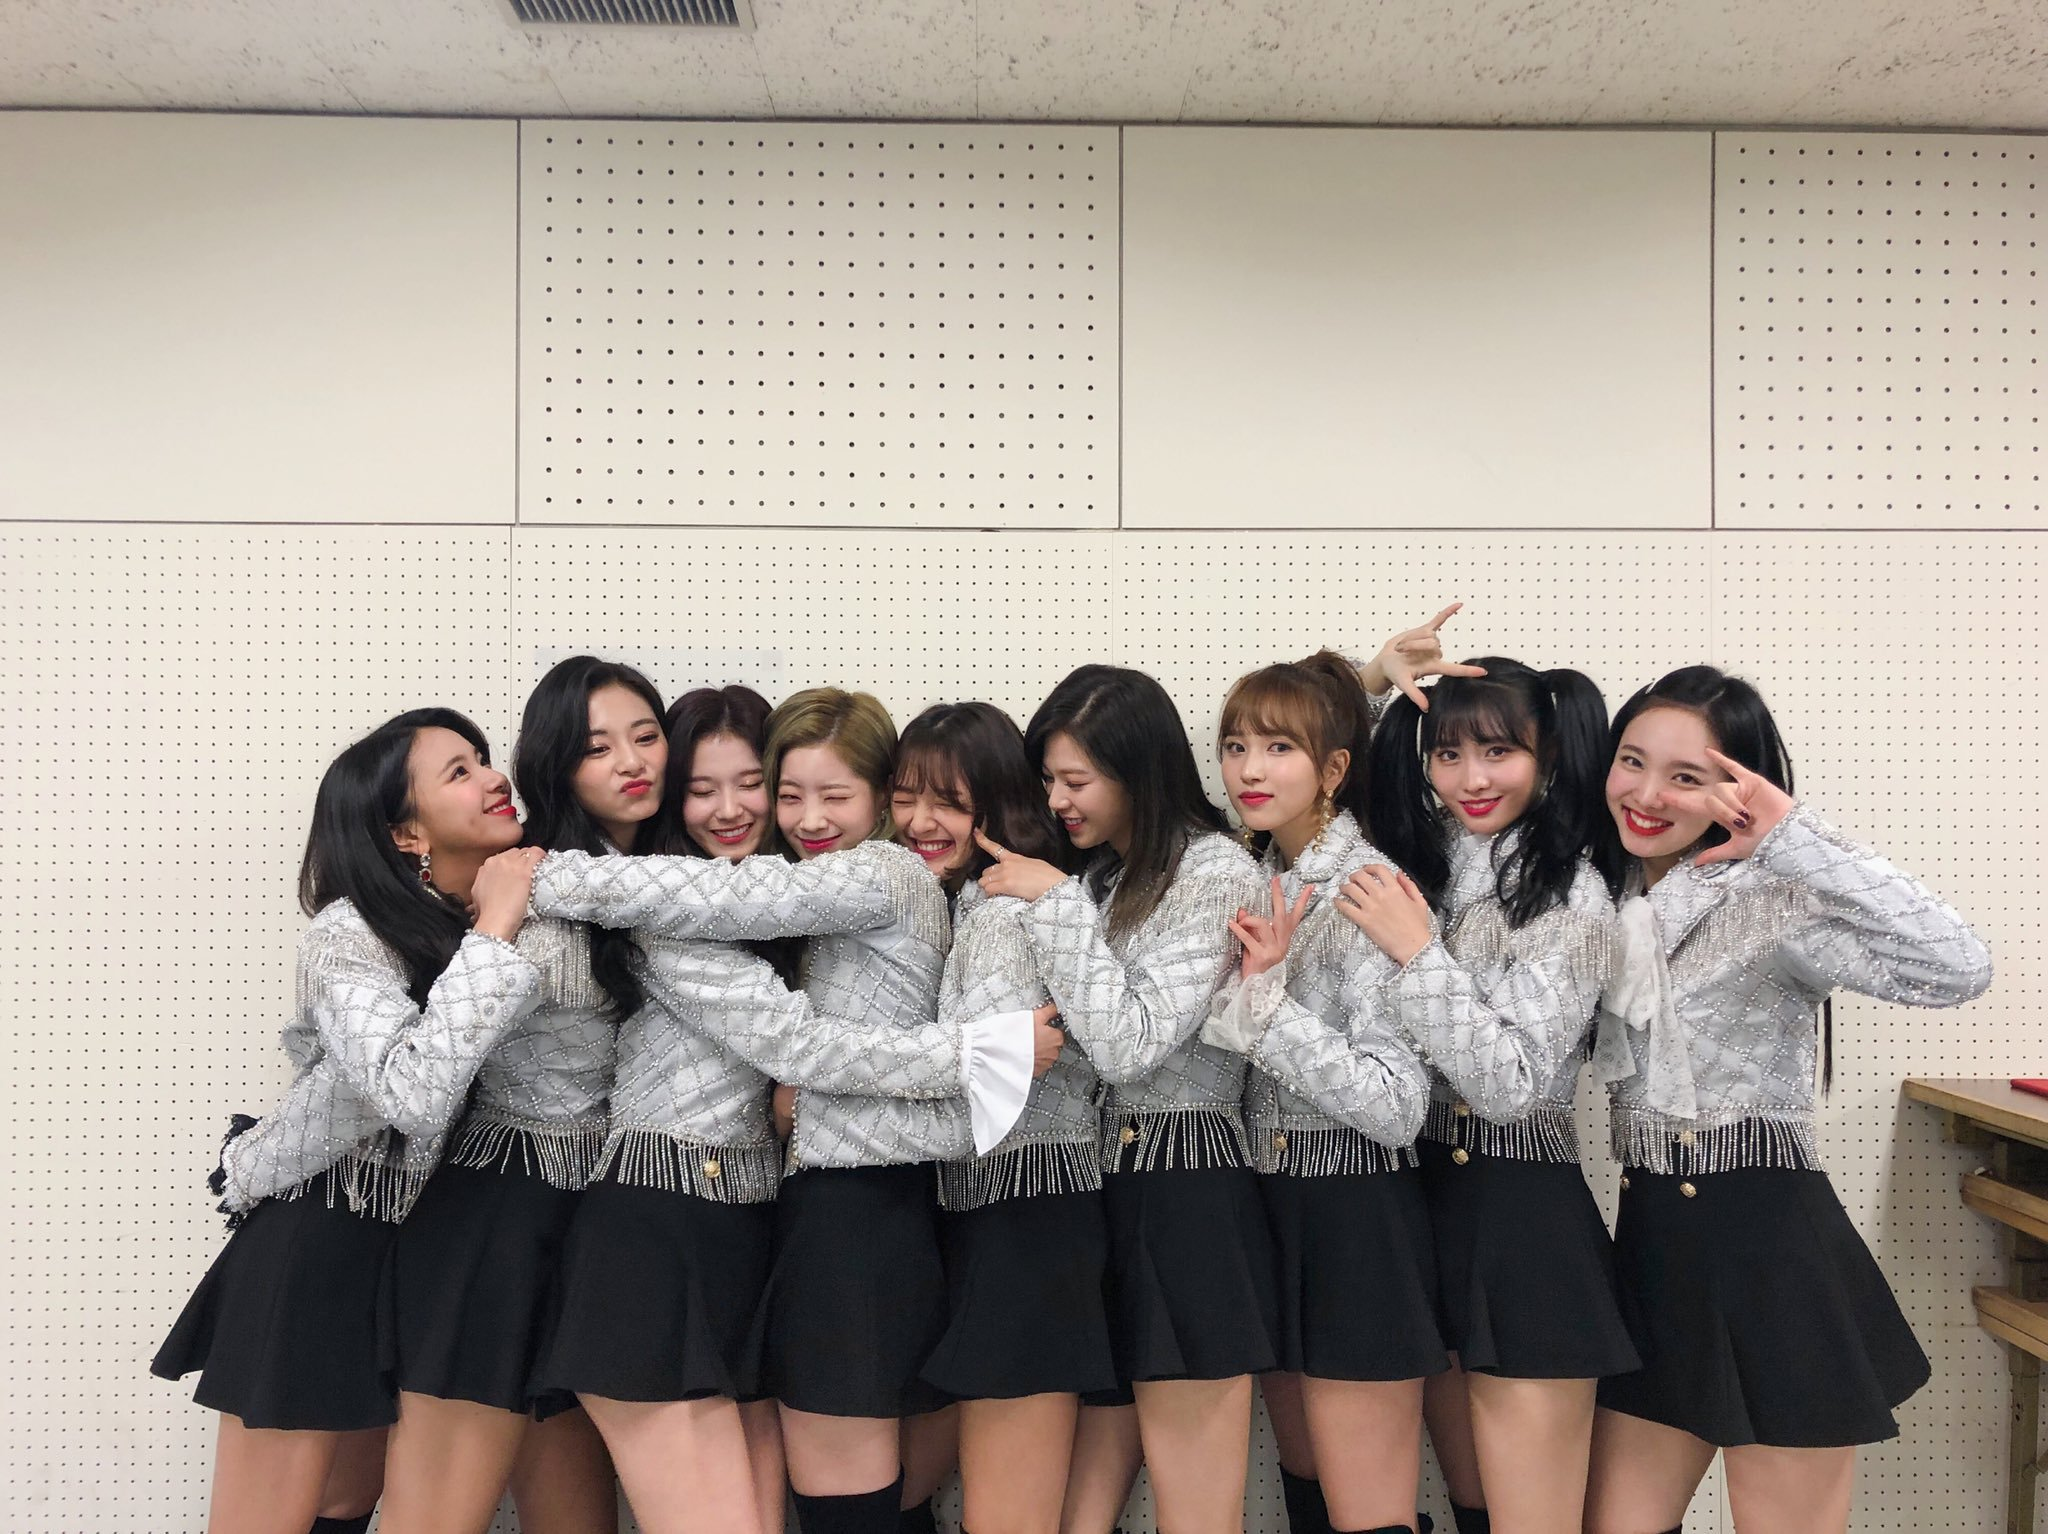 Fans Speculate Activities Of TWICE After April Comeback